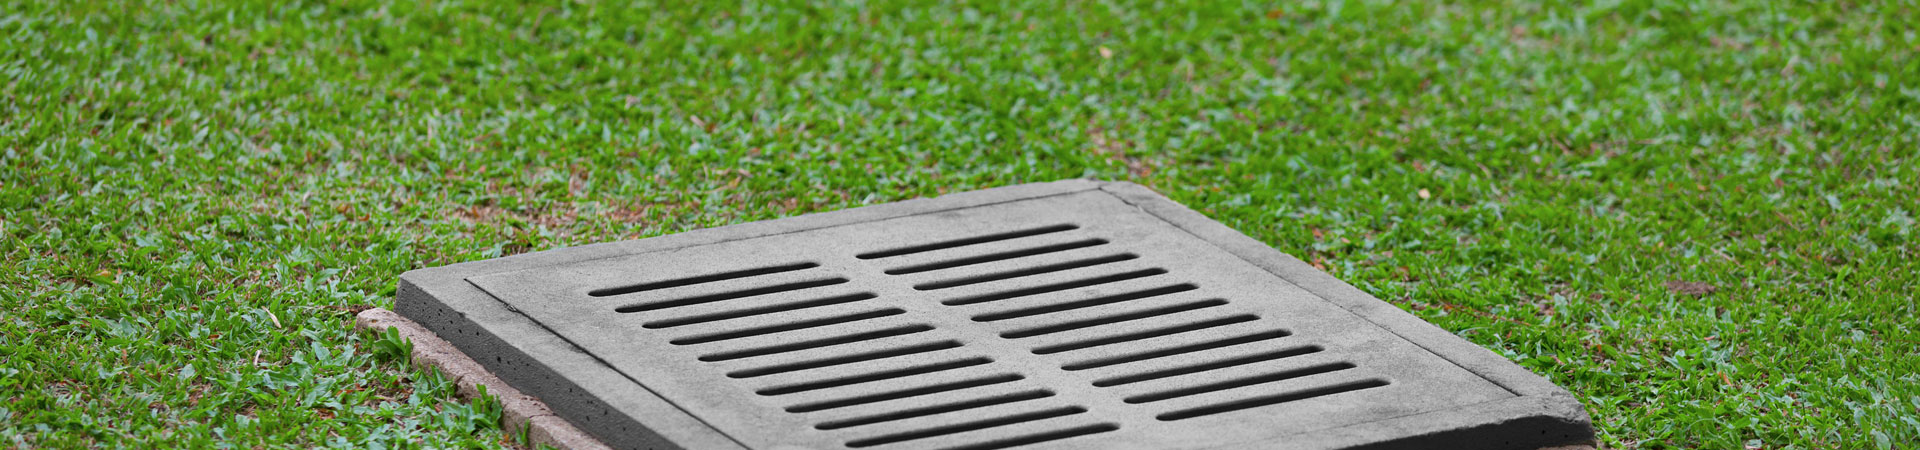 storm drain grate installed as a part of the garden drainage